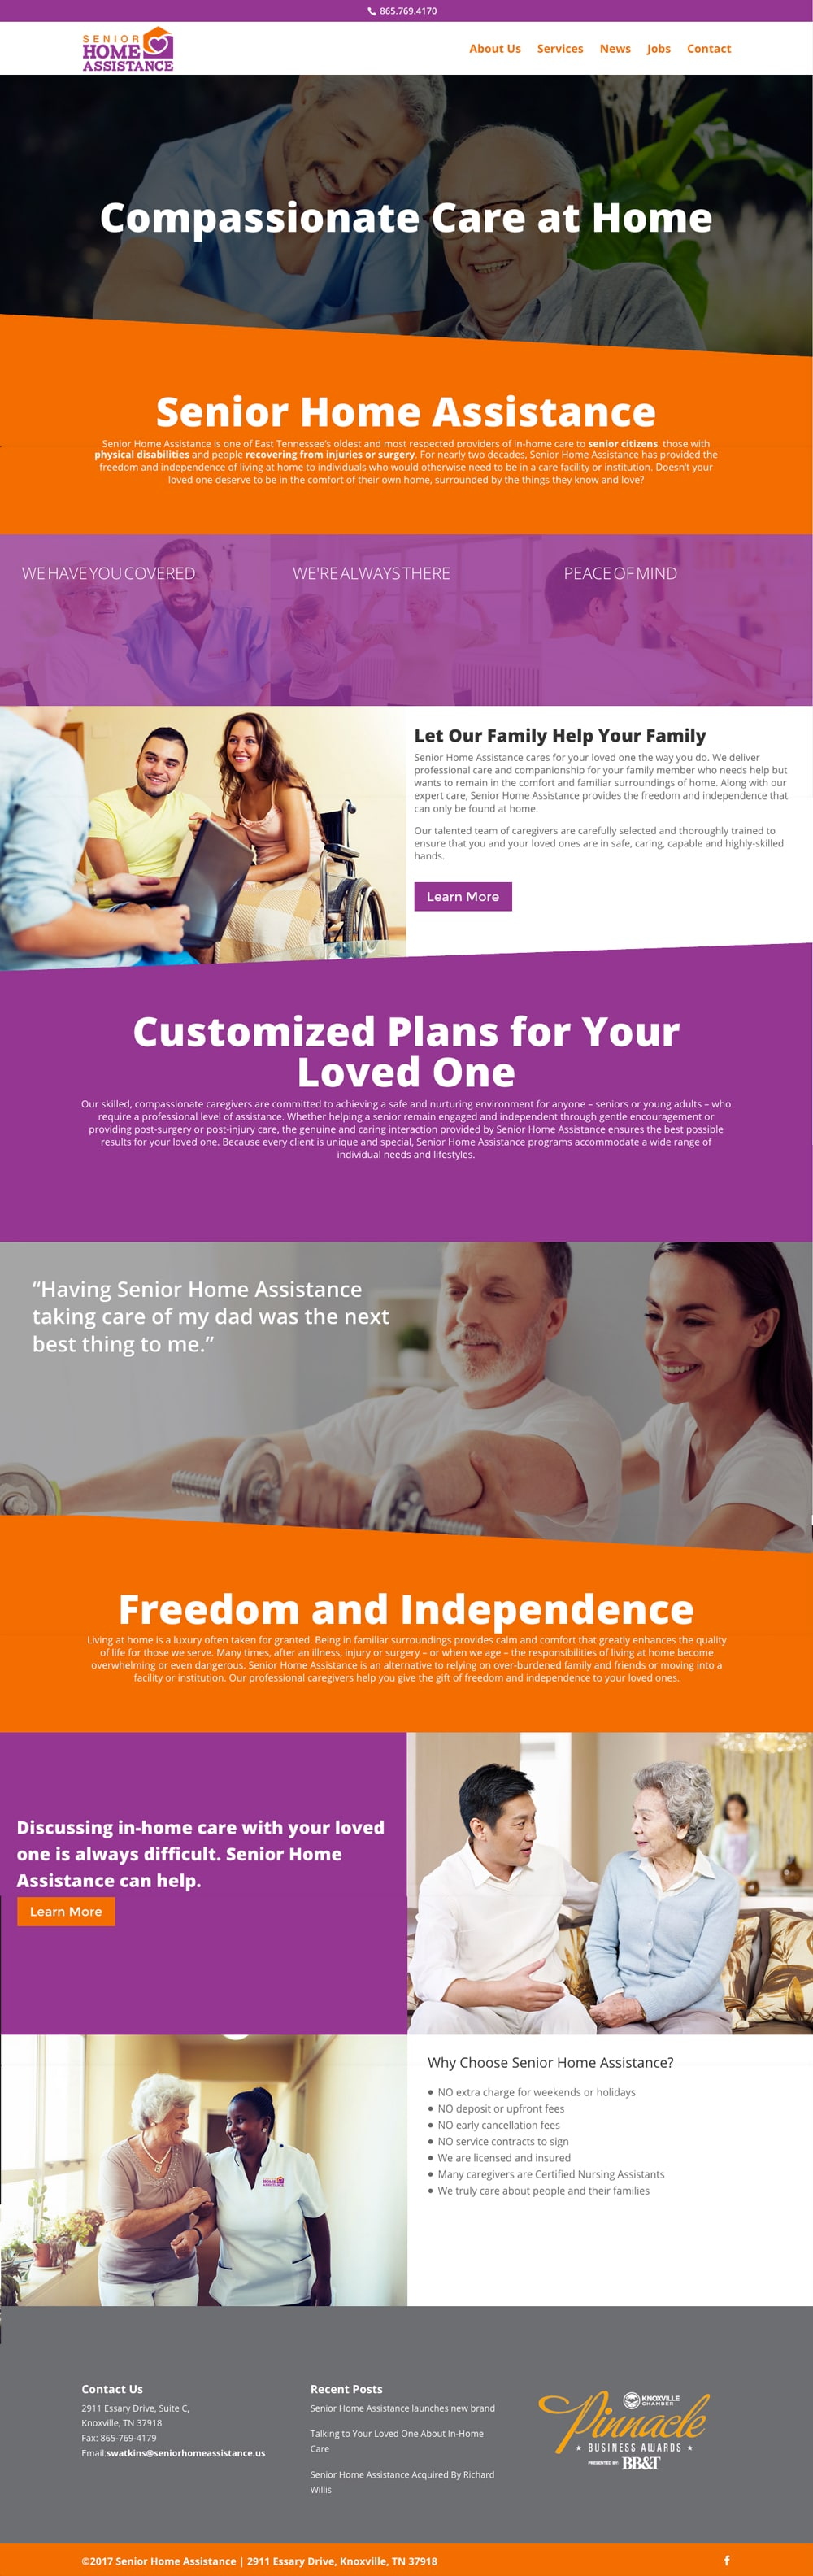 Senior Home Assistance Website Project - Knoxville TN